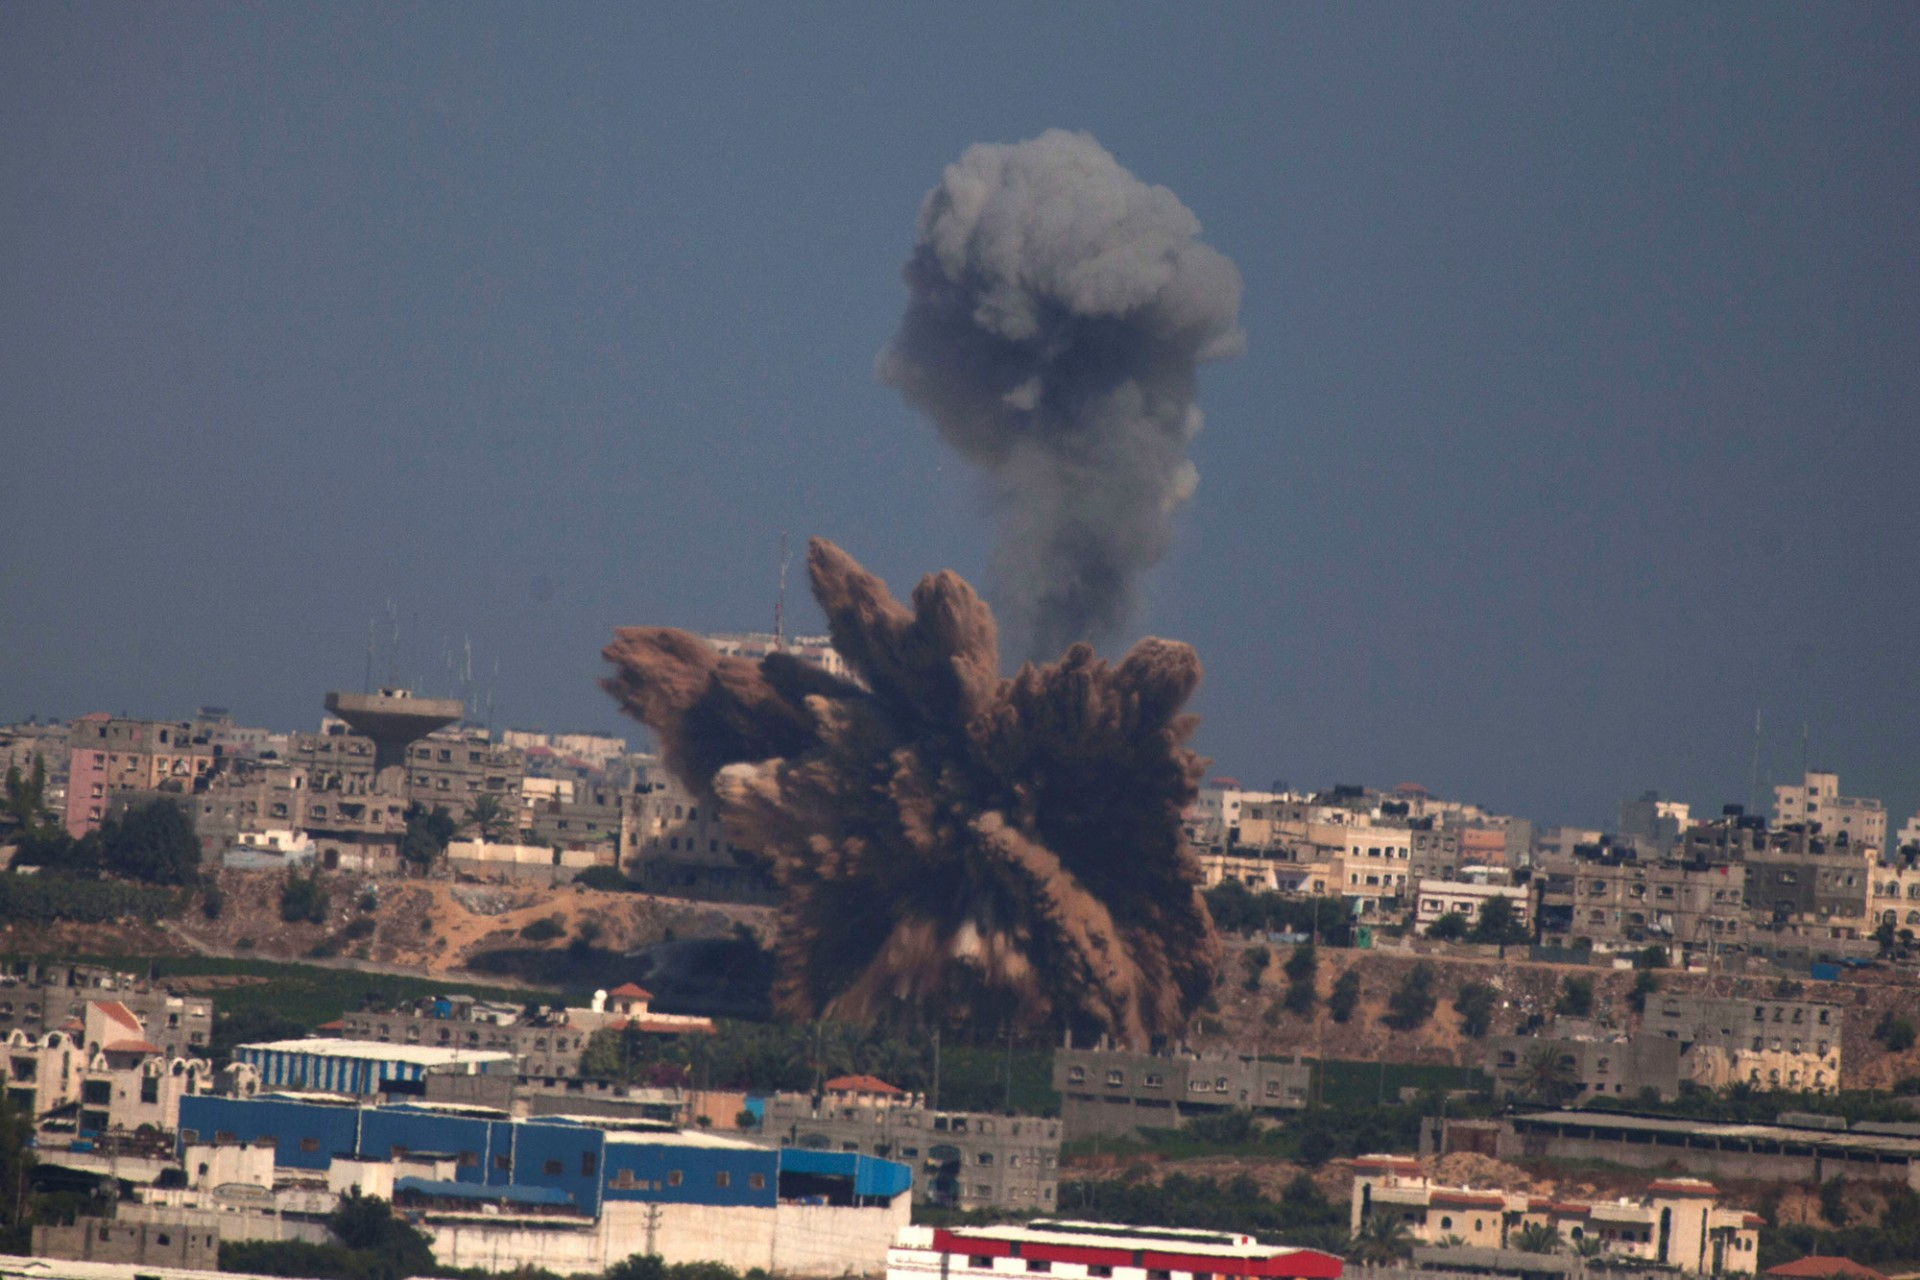 A plume of smoke rises over Gaza following an Israel Air Force bombing, on July 9, 2014.